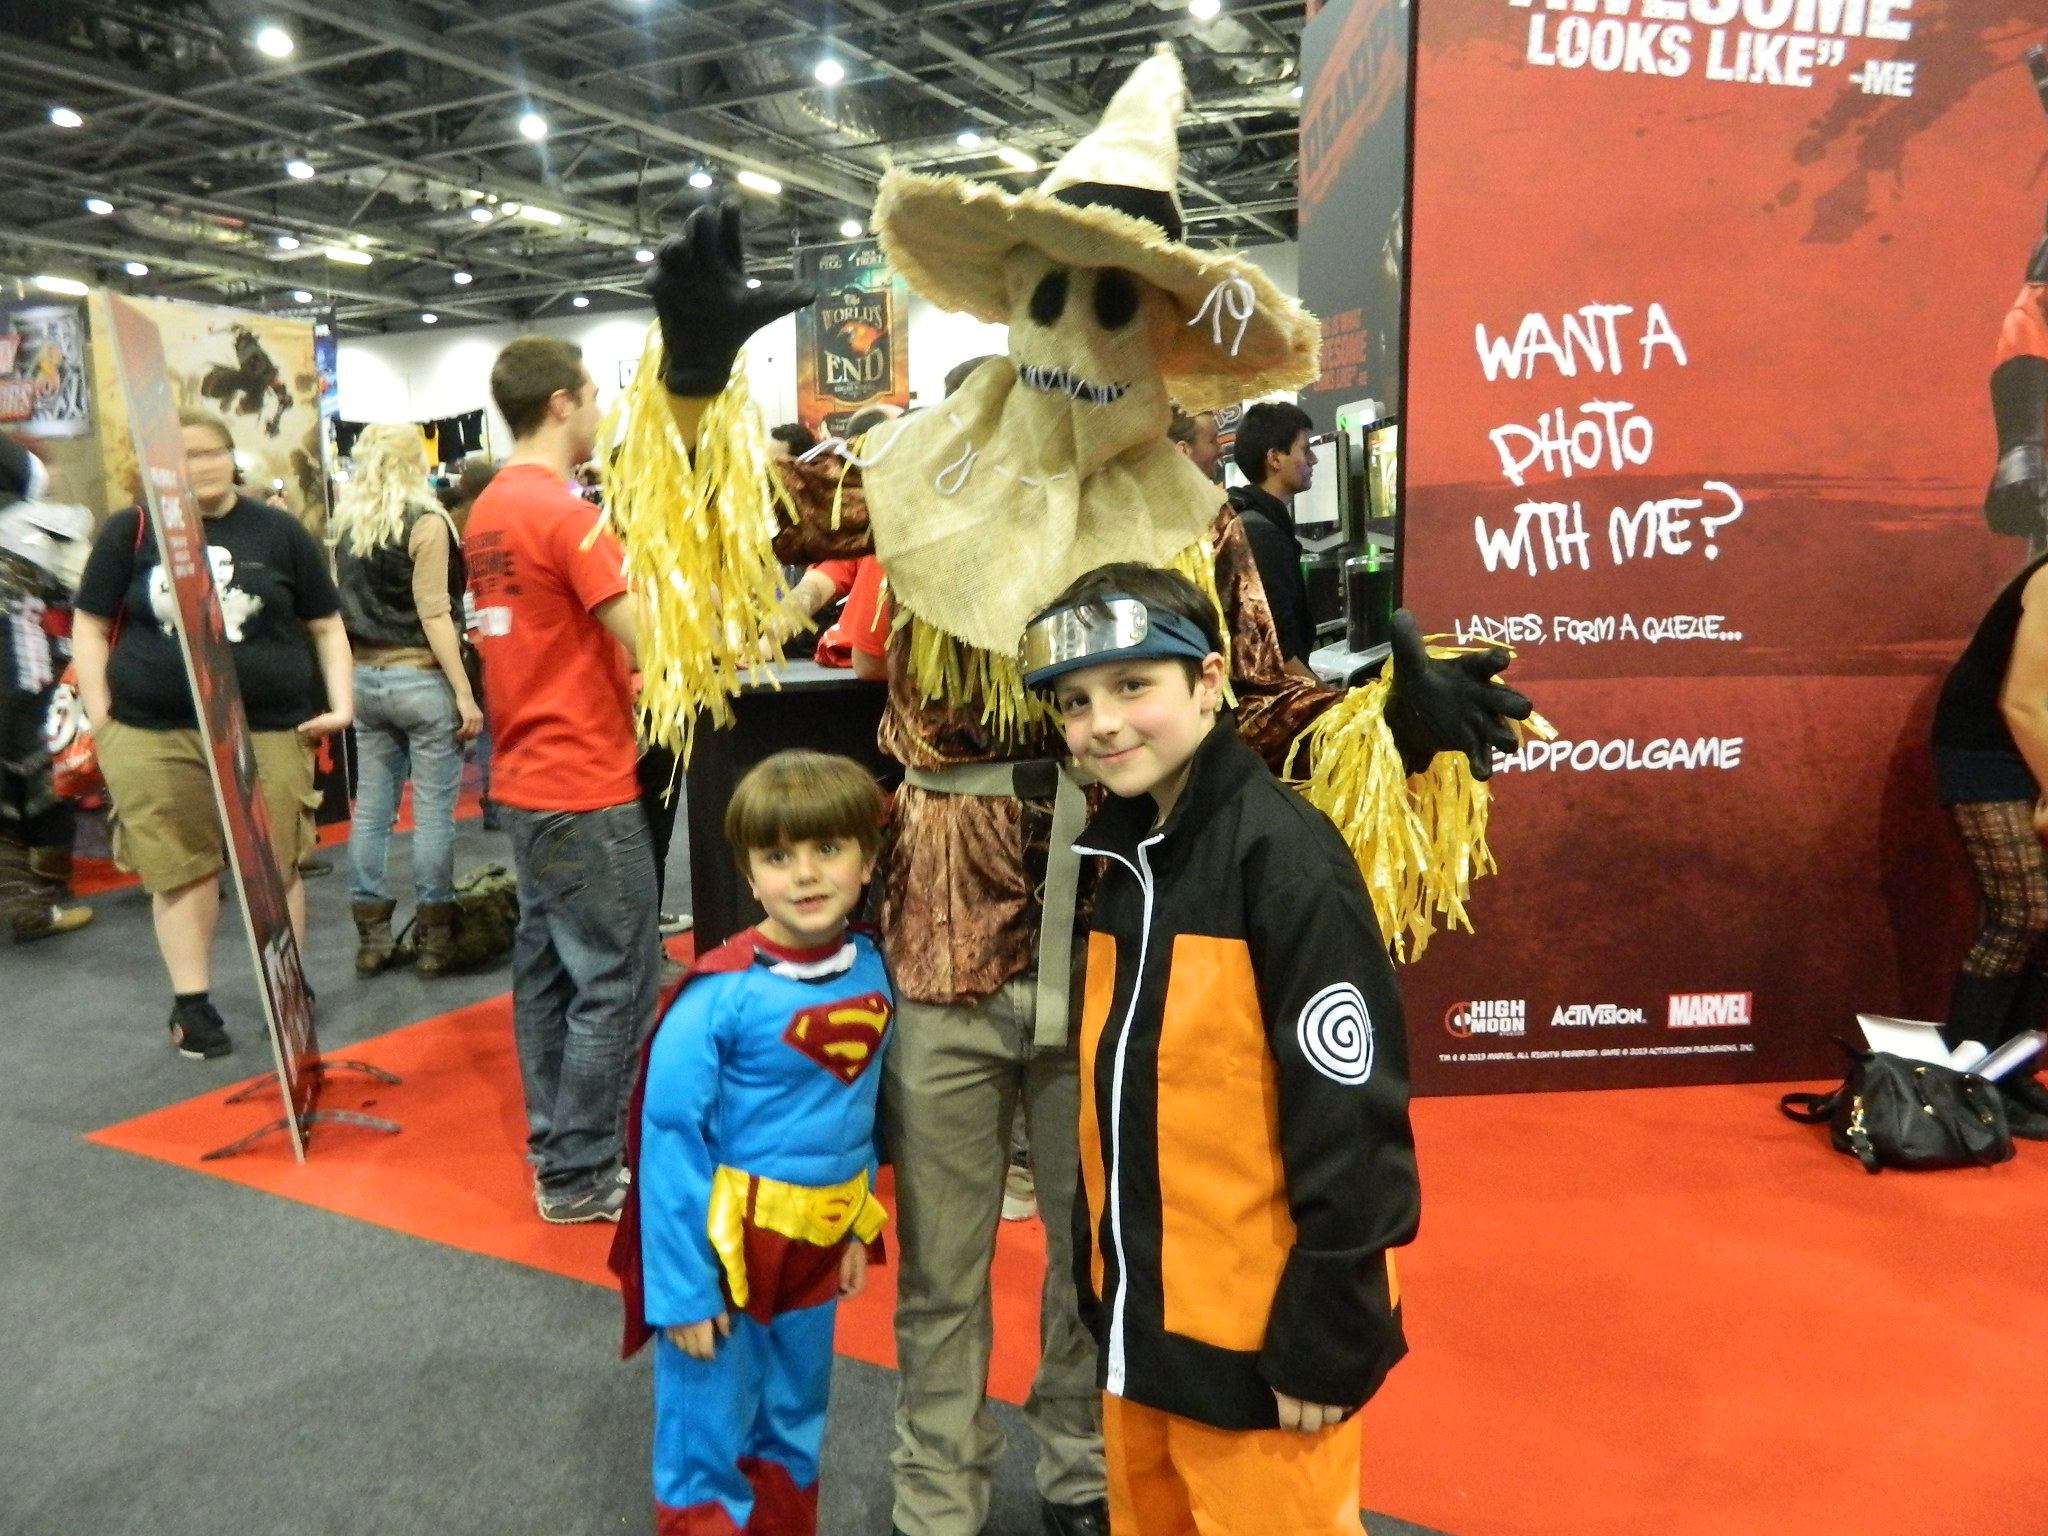 Mcm Expo Stands For : London comic con mcm expo may rd th